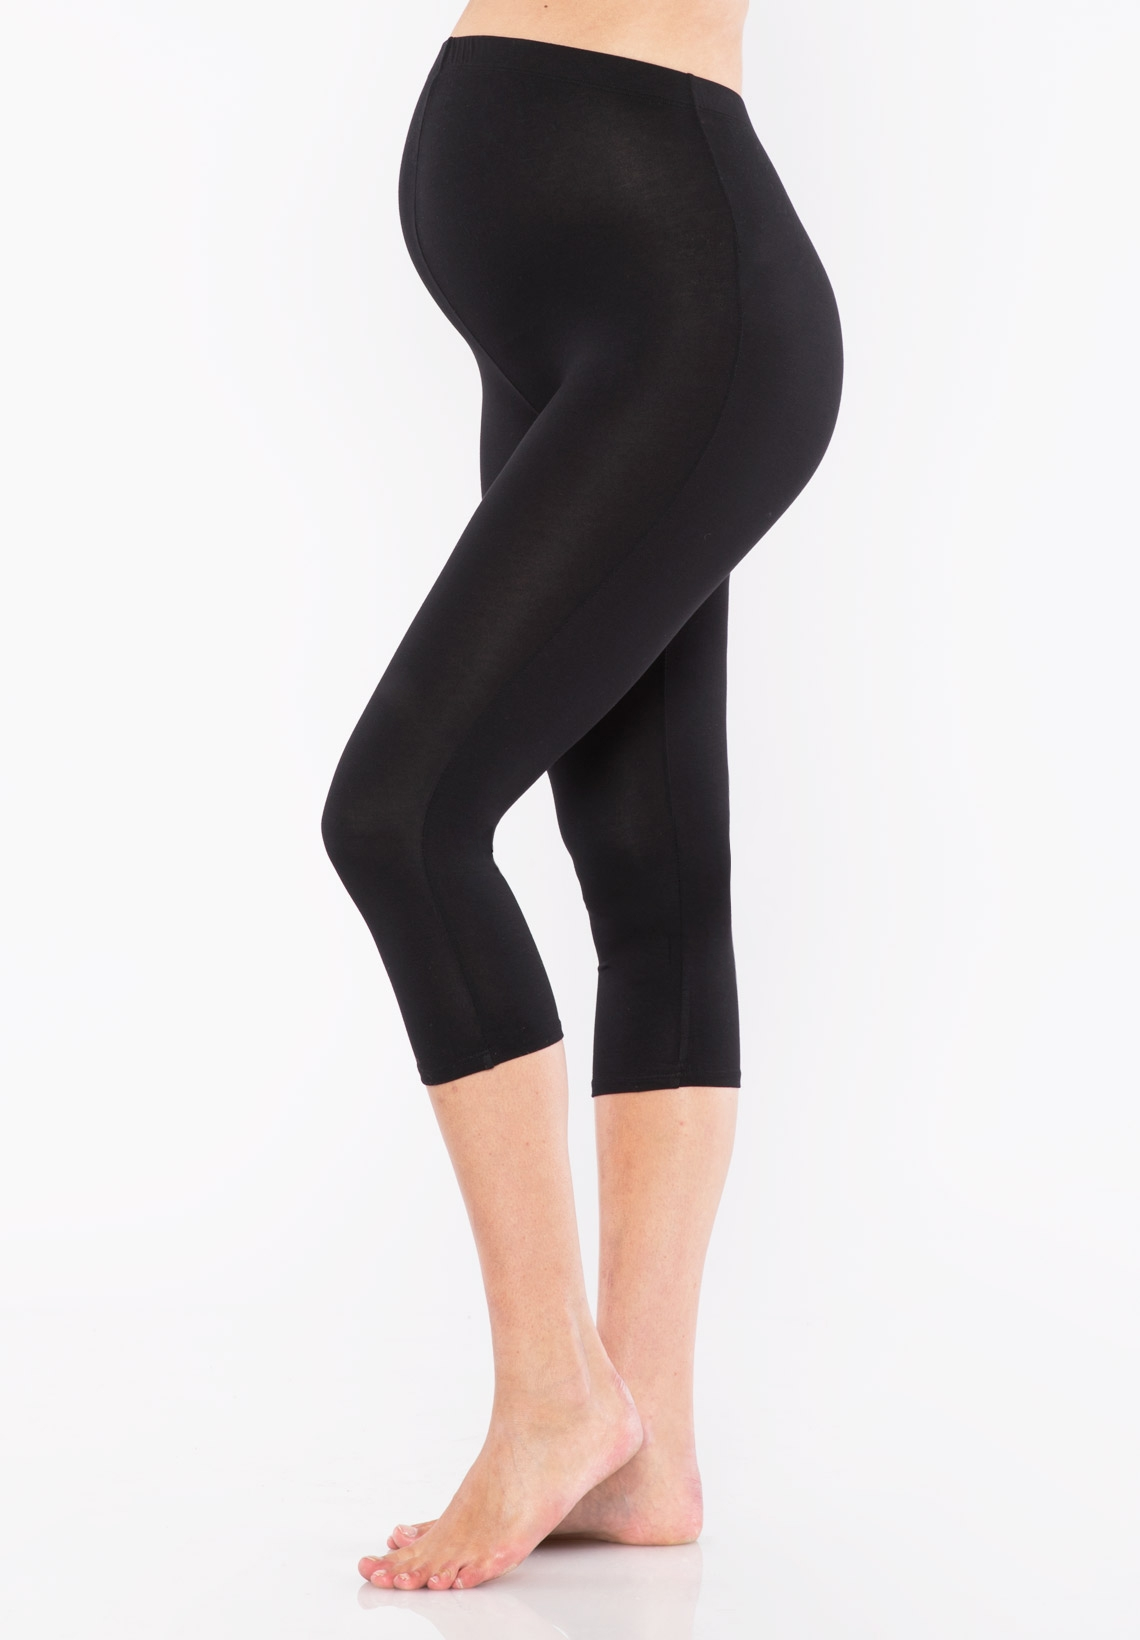 Our wide selection of maternity leggings are comfortable and stylish. Wear them during your pregnancy for a casual and chic look. Destination Maternity.